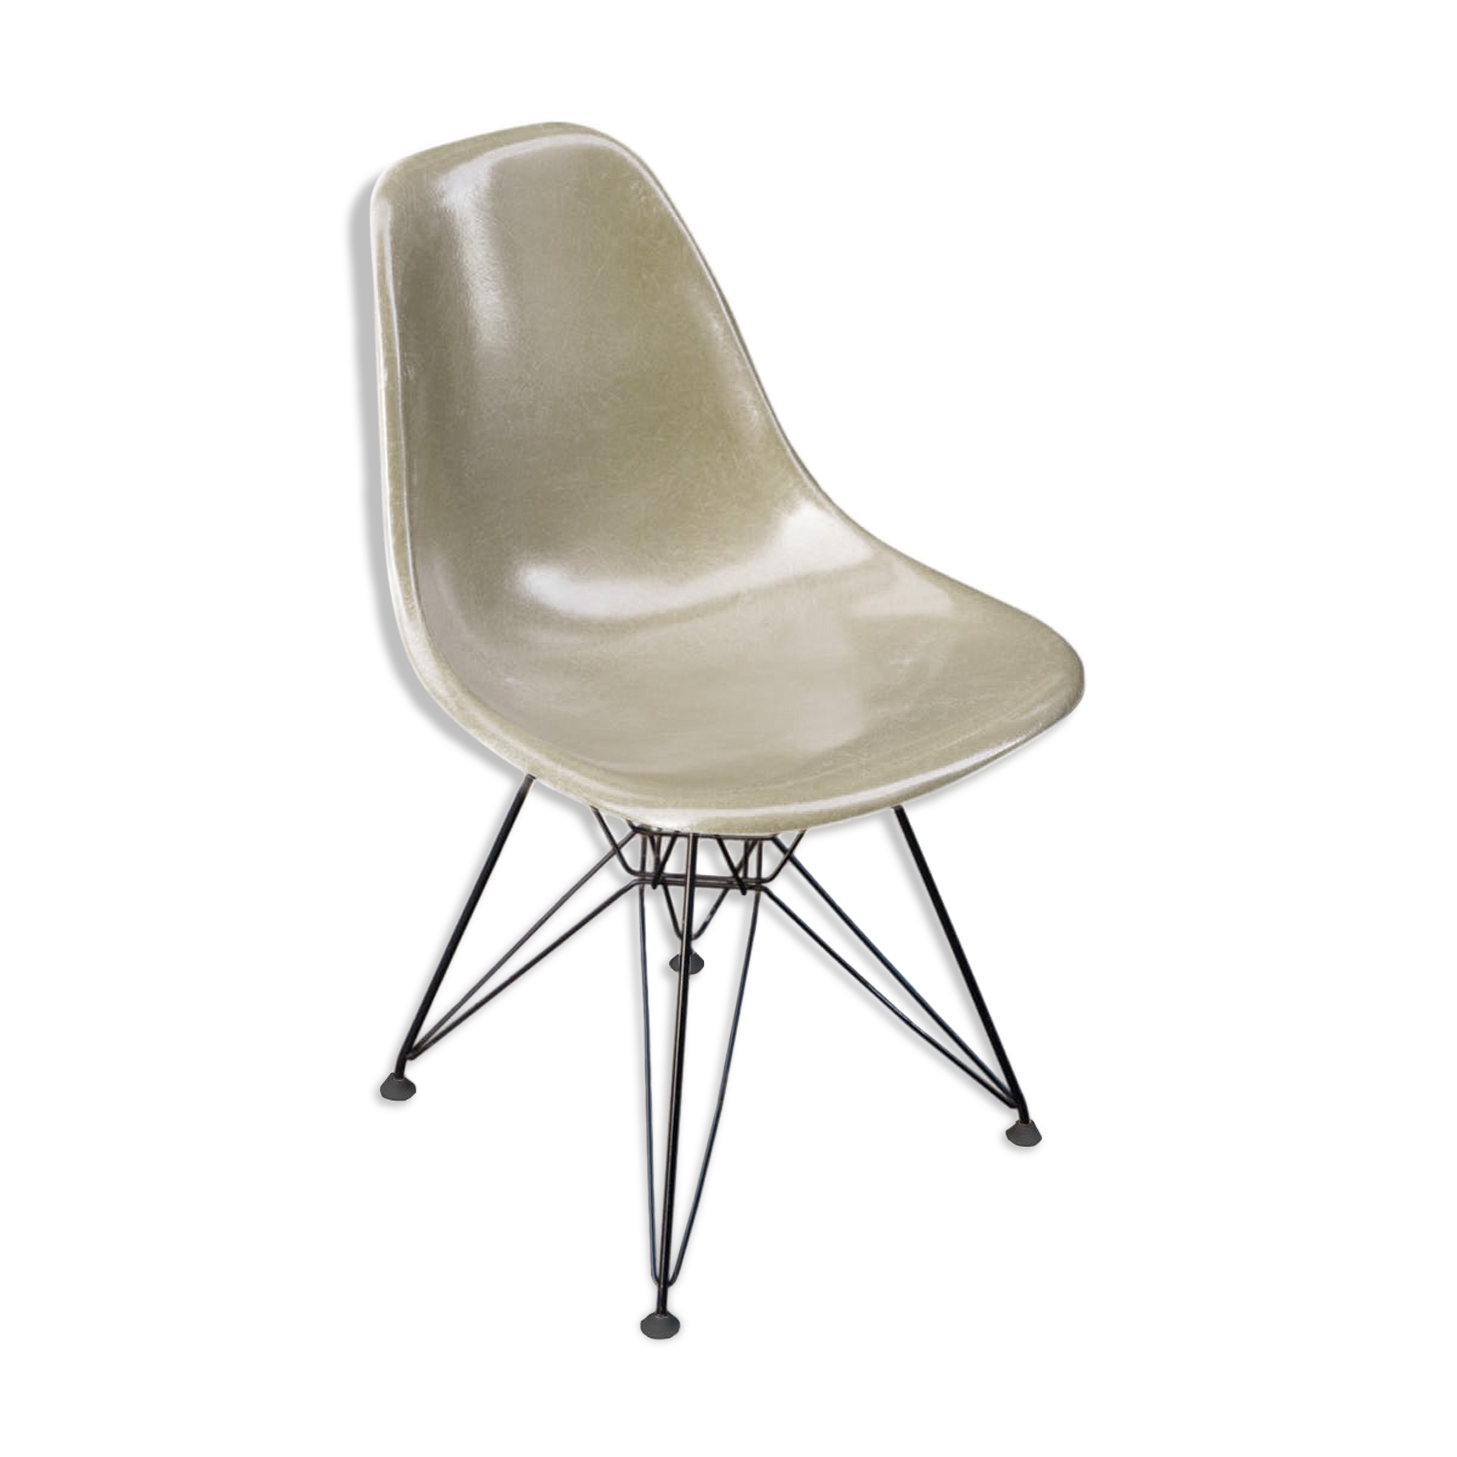 Finest Great Chaise Dsr Design Charles Et Ray Eames Dition Herman Miller Pied Eiffel With Fauteuil